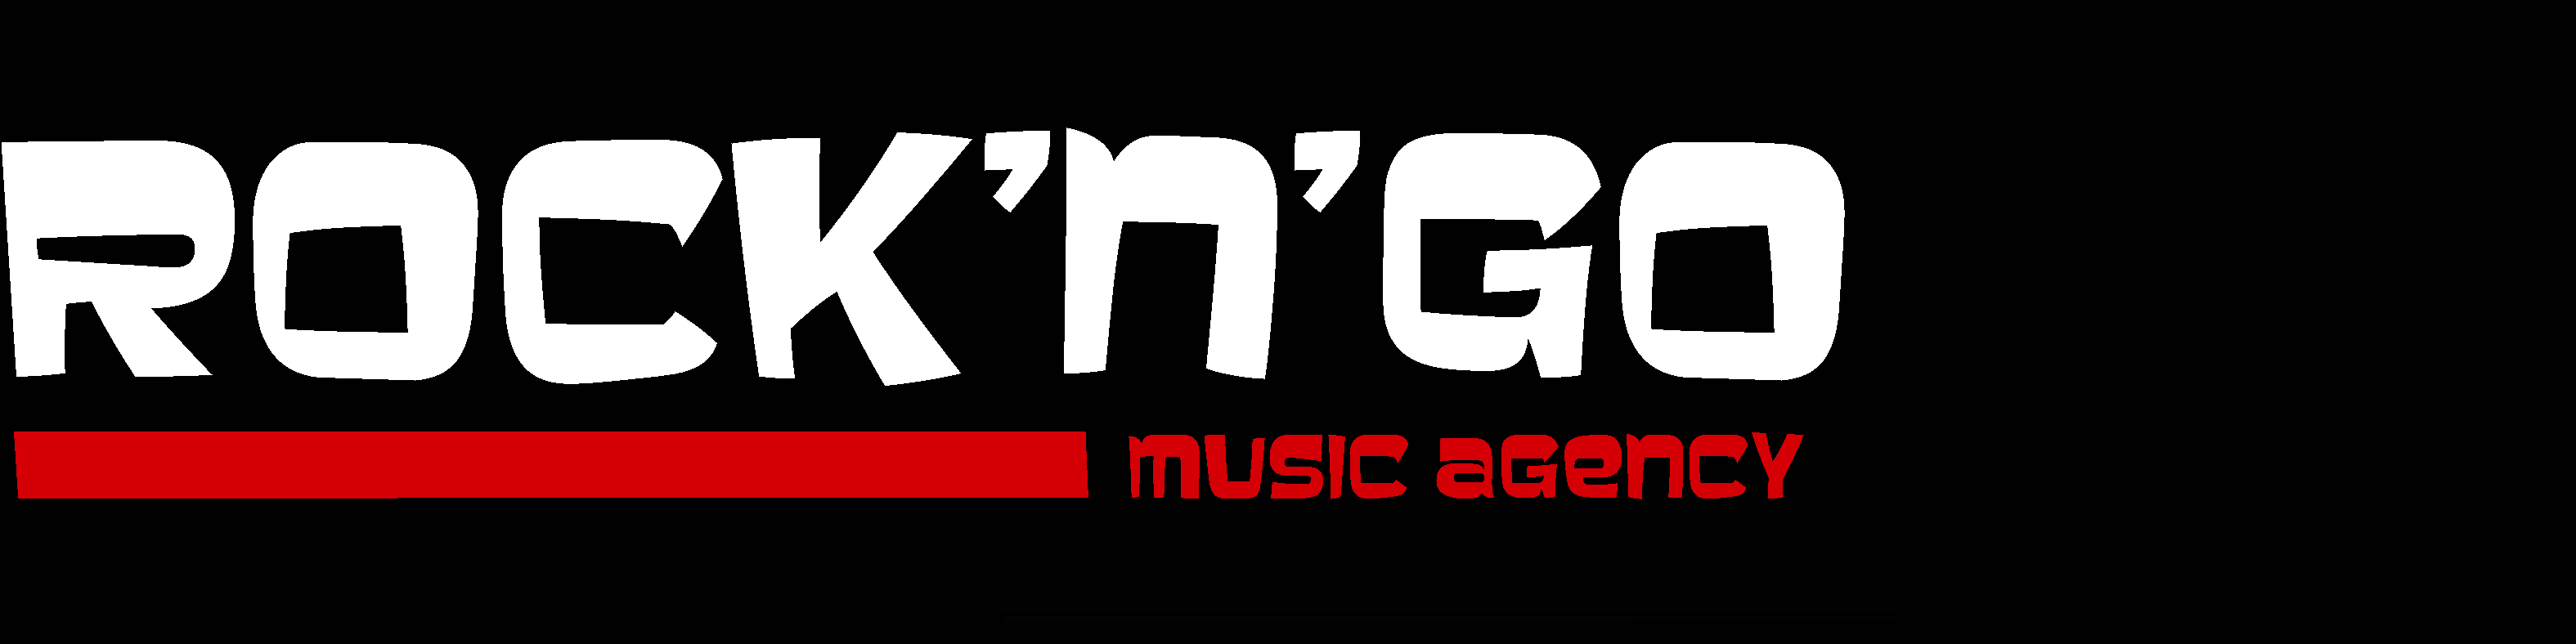 ROCK'n'GO MUSIC AGENCY 2020